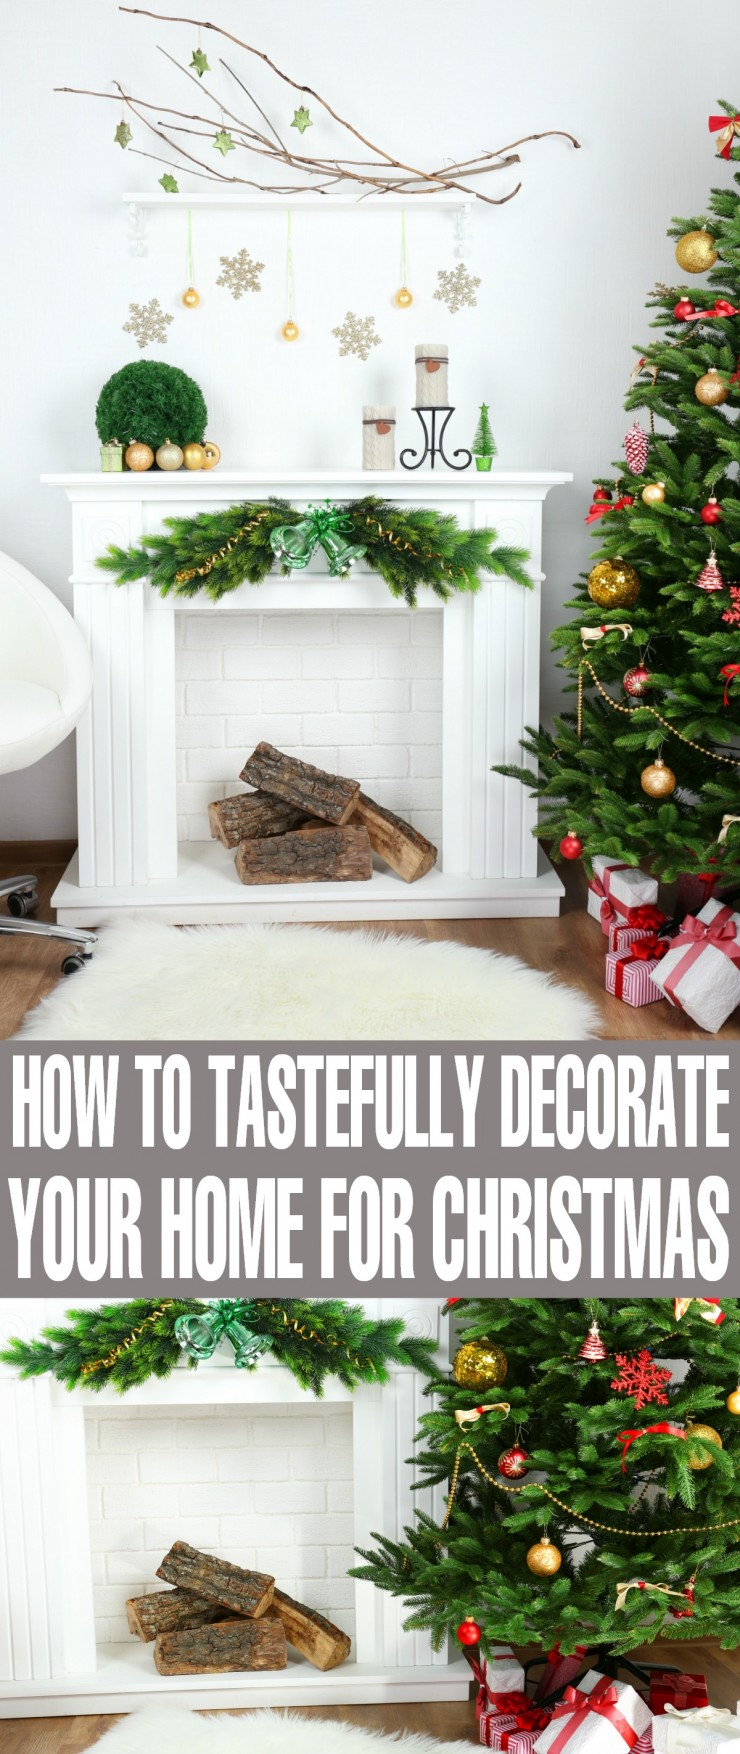 we've come up with a few tips to help you tastefully decorate your home for Christmas.